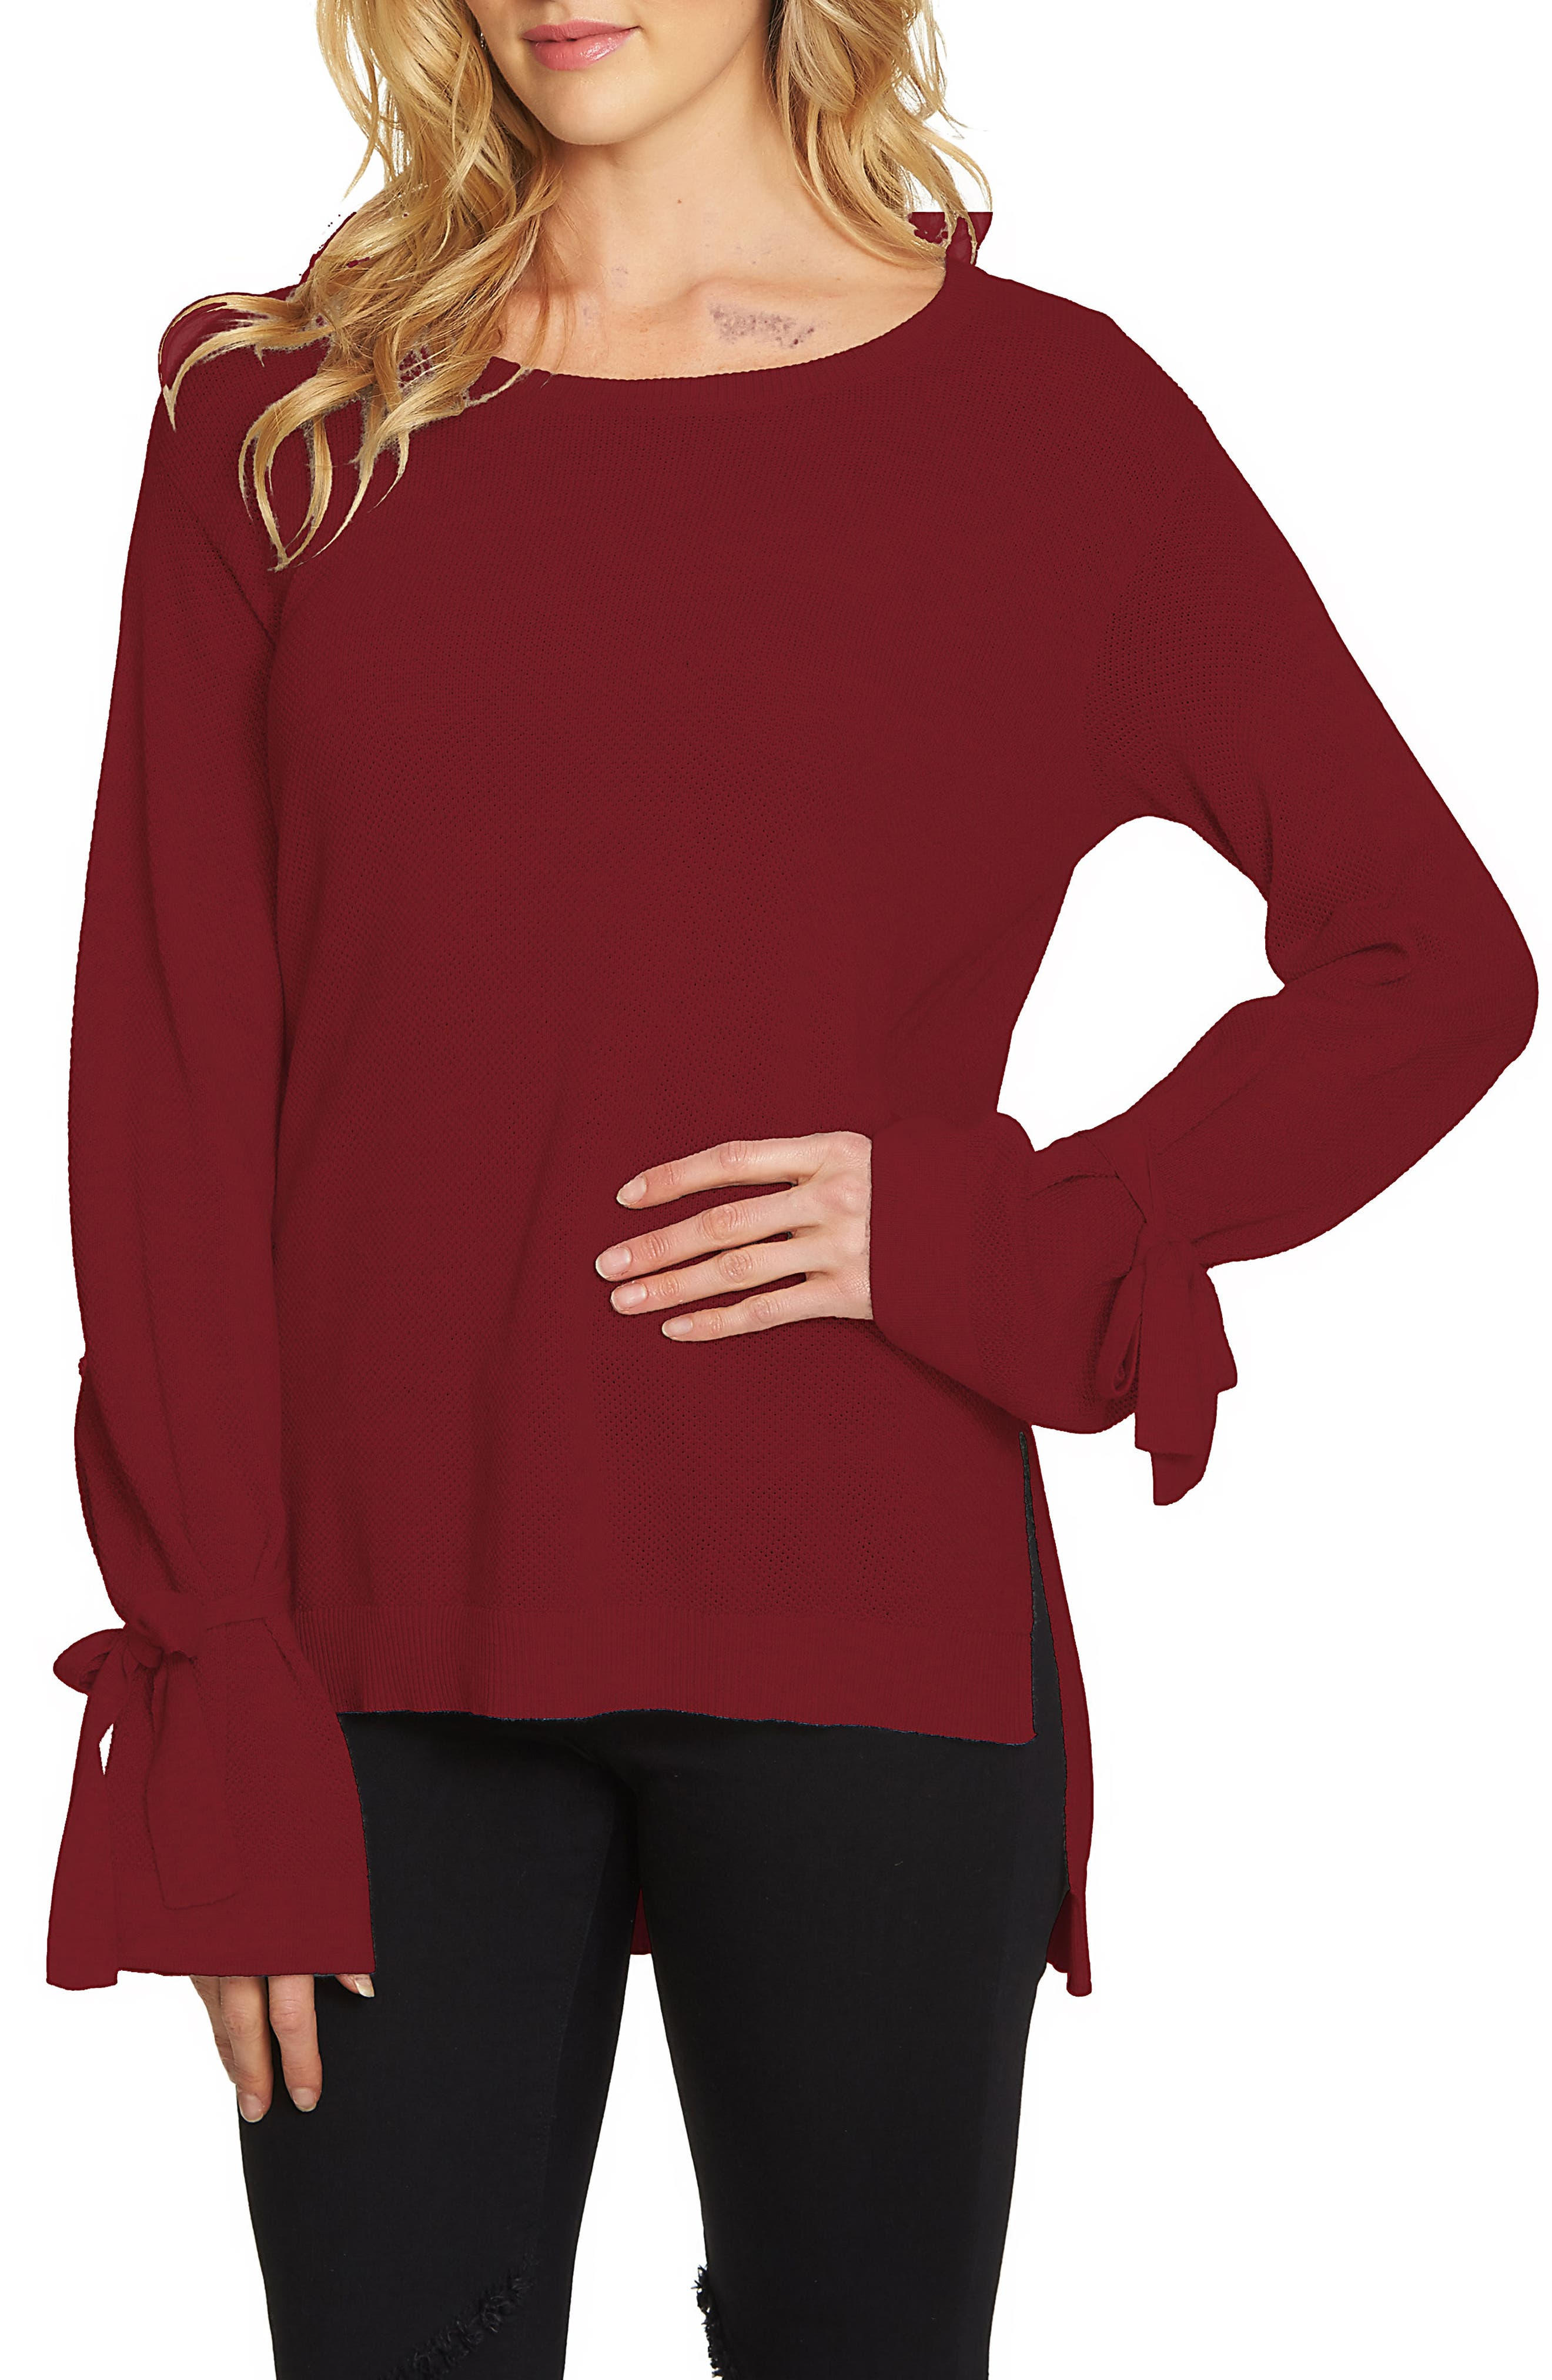 Main Image - 1.STATE Tied Bell Sleeve Sweater